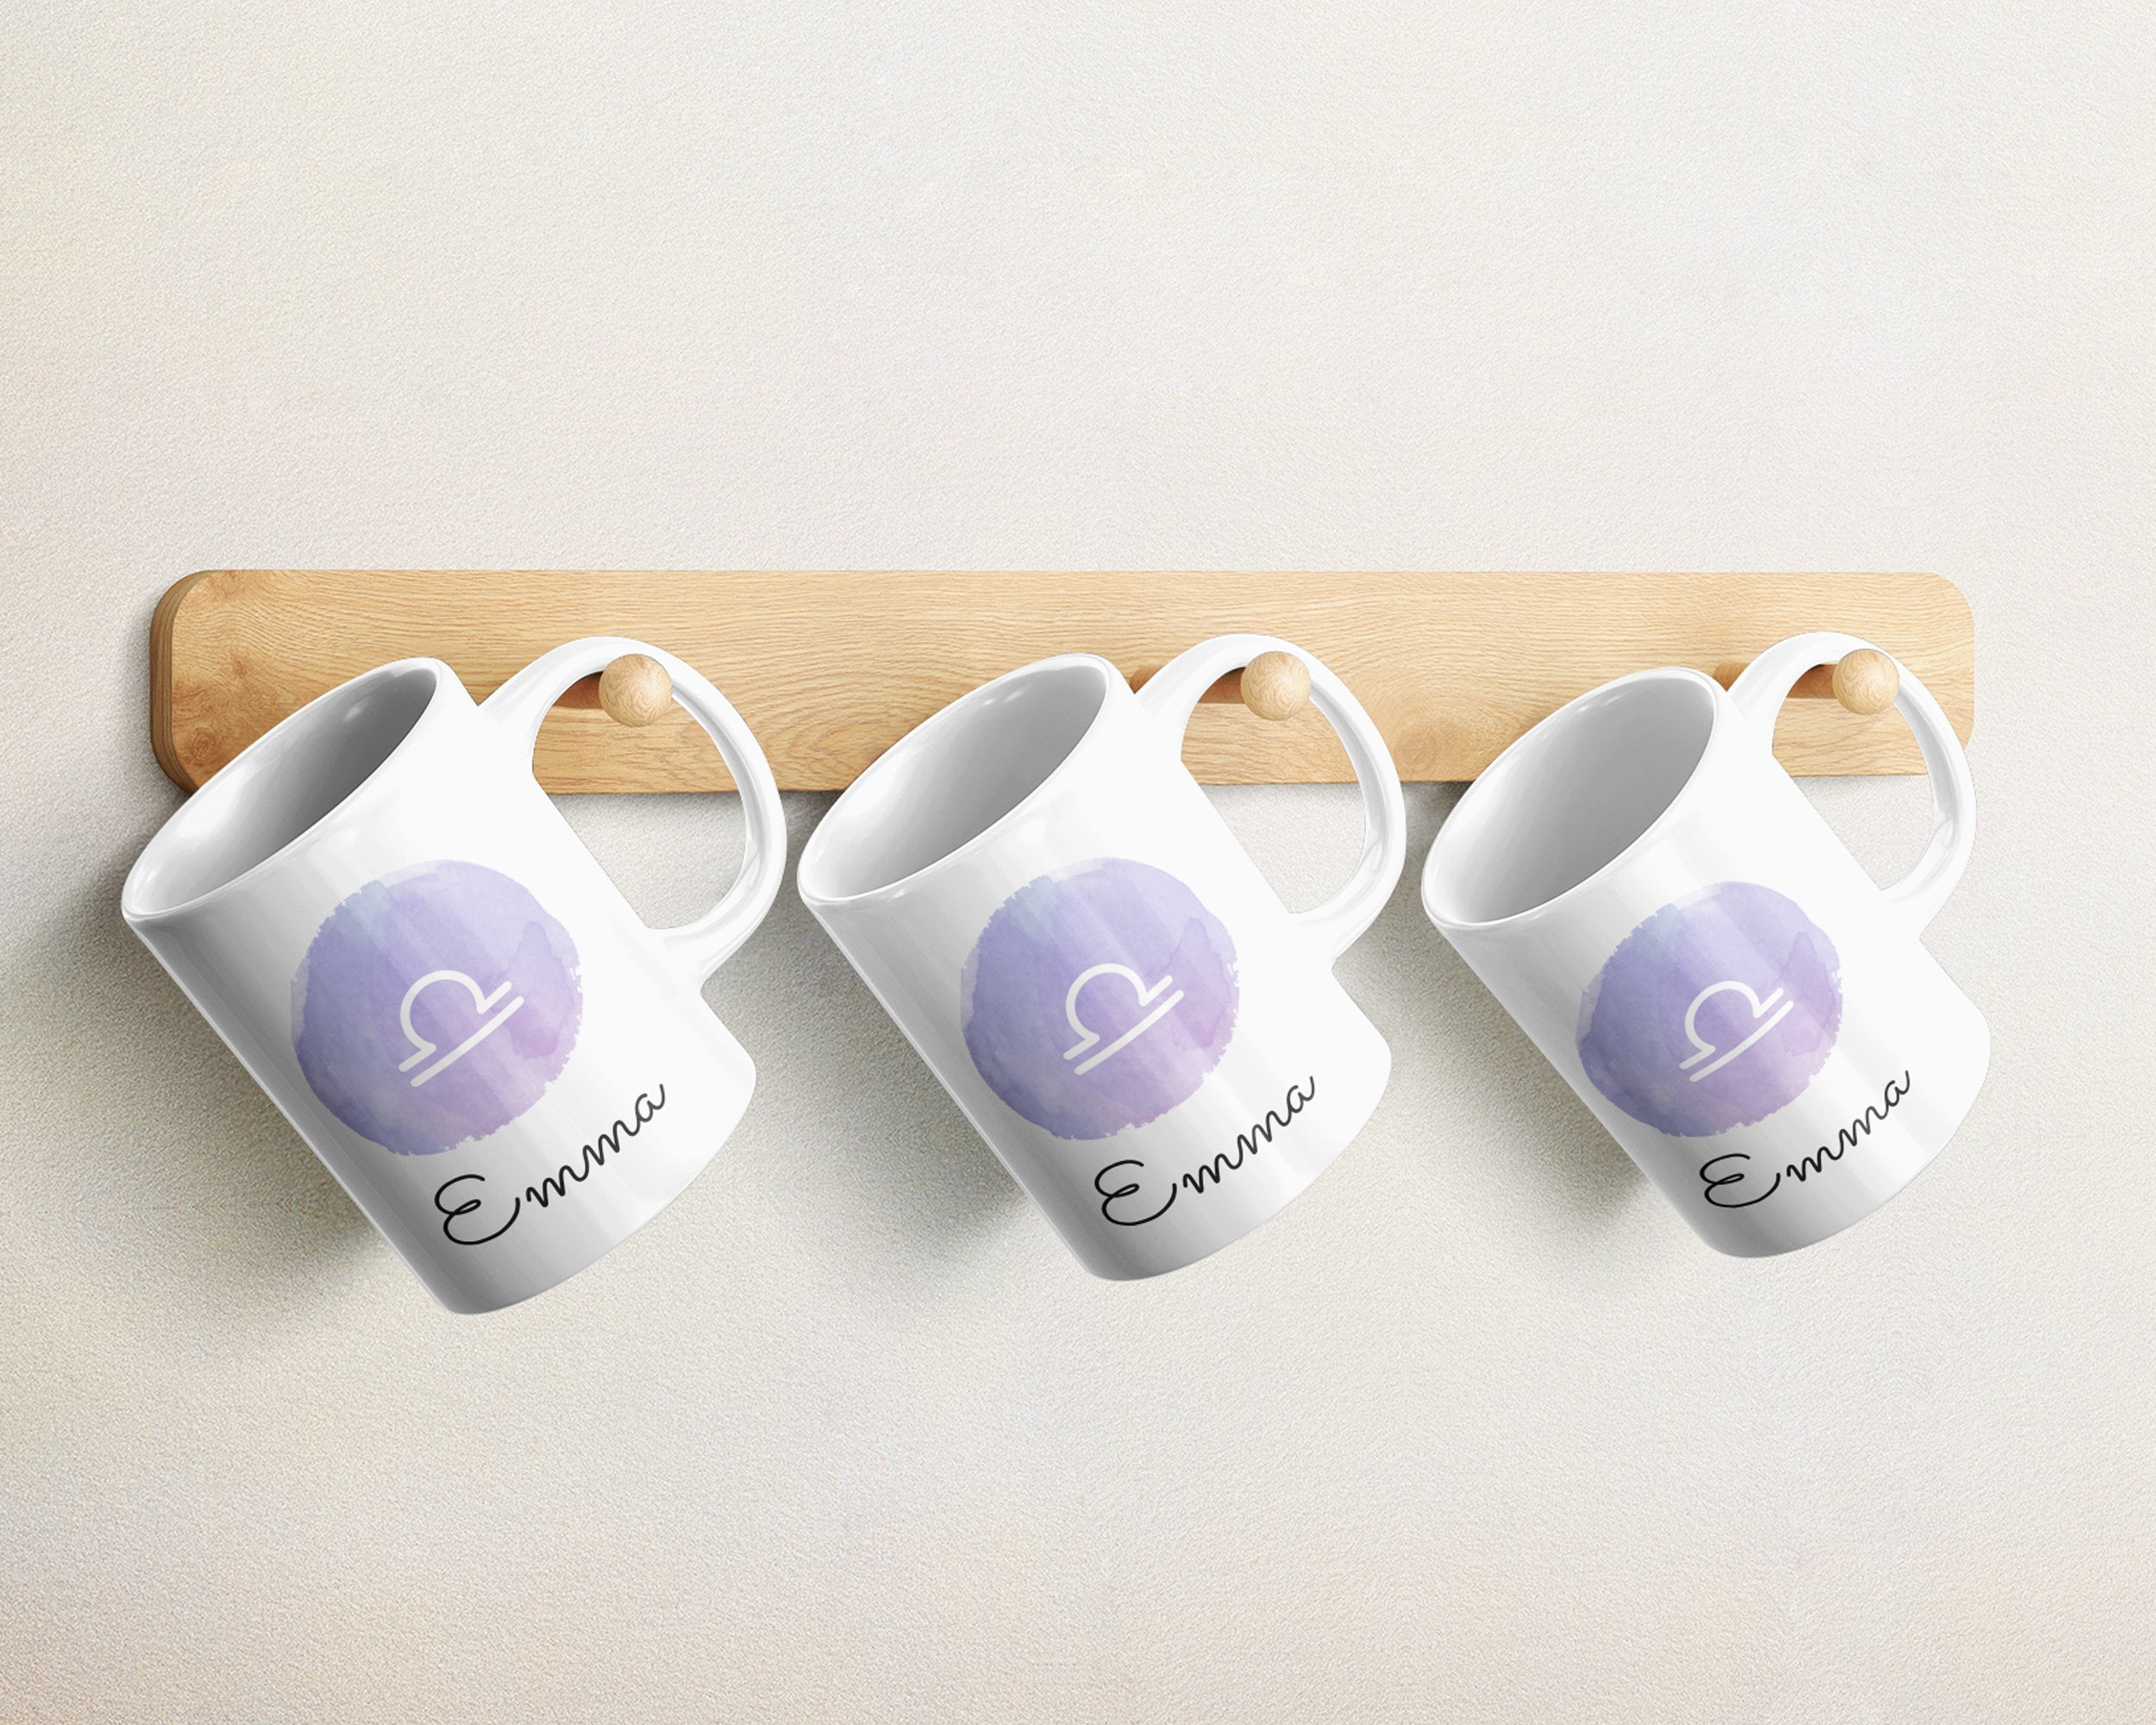 Libra Mug - Zodiac Gifts for Libra - Libra Gifts - Libra Cup - Zodiac Constellation Mug - Libra Constellation Coffee Mug - Zodiac Mug - HoneyCustom